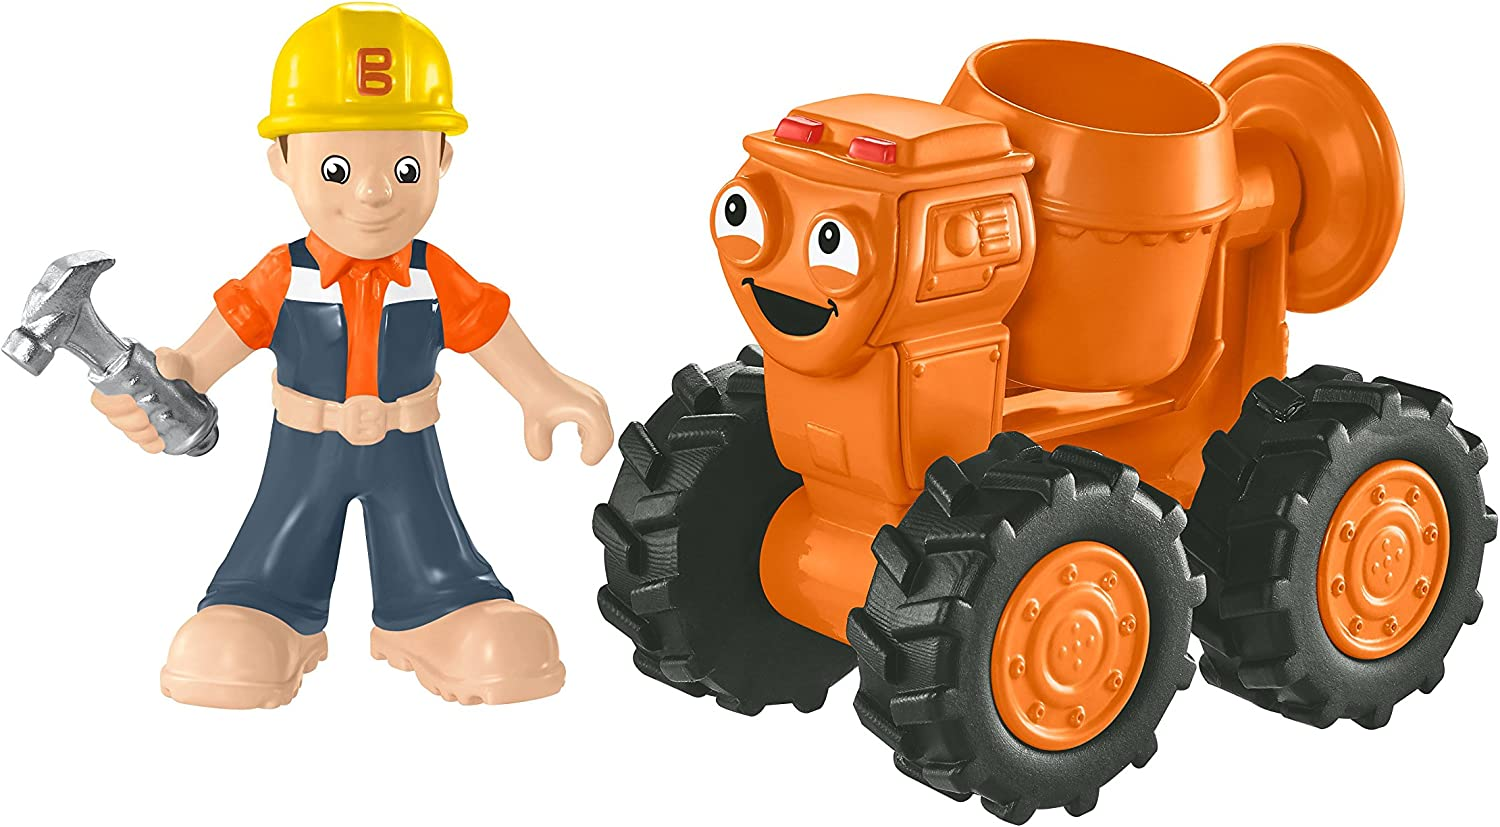 Fisher-Price Bob the Builder Die-Cast Dizzy Toy Vehicle